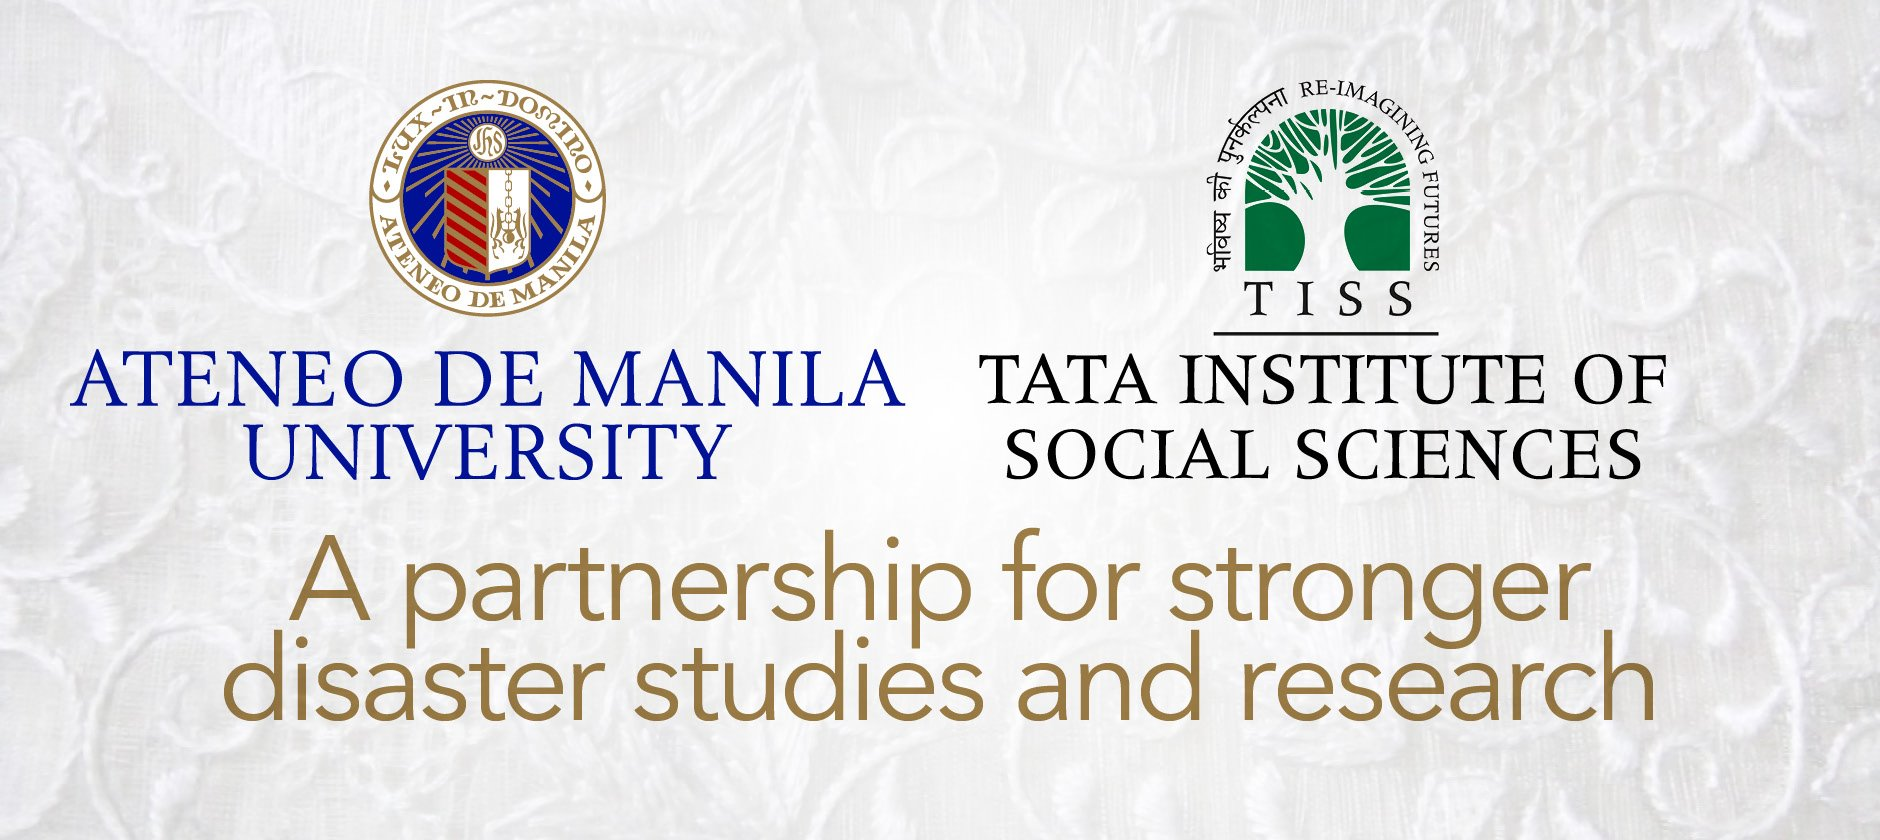 Ateneo, India's Tata Institute of Social Sciences link up to strengthen disaster studies and research